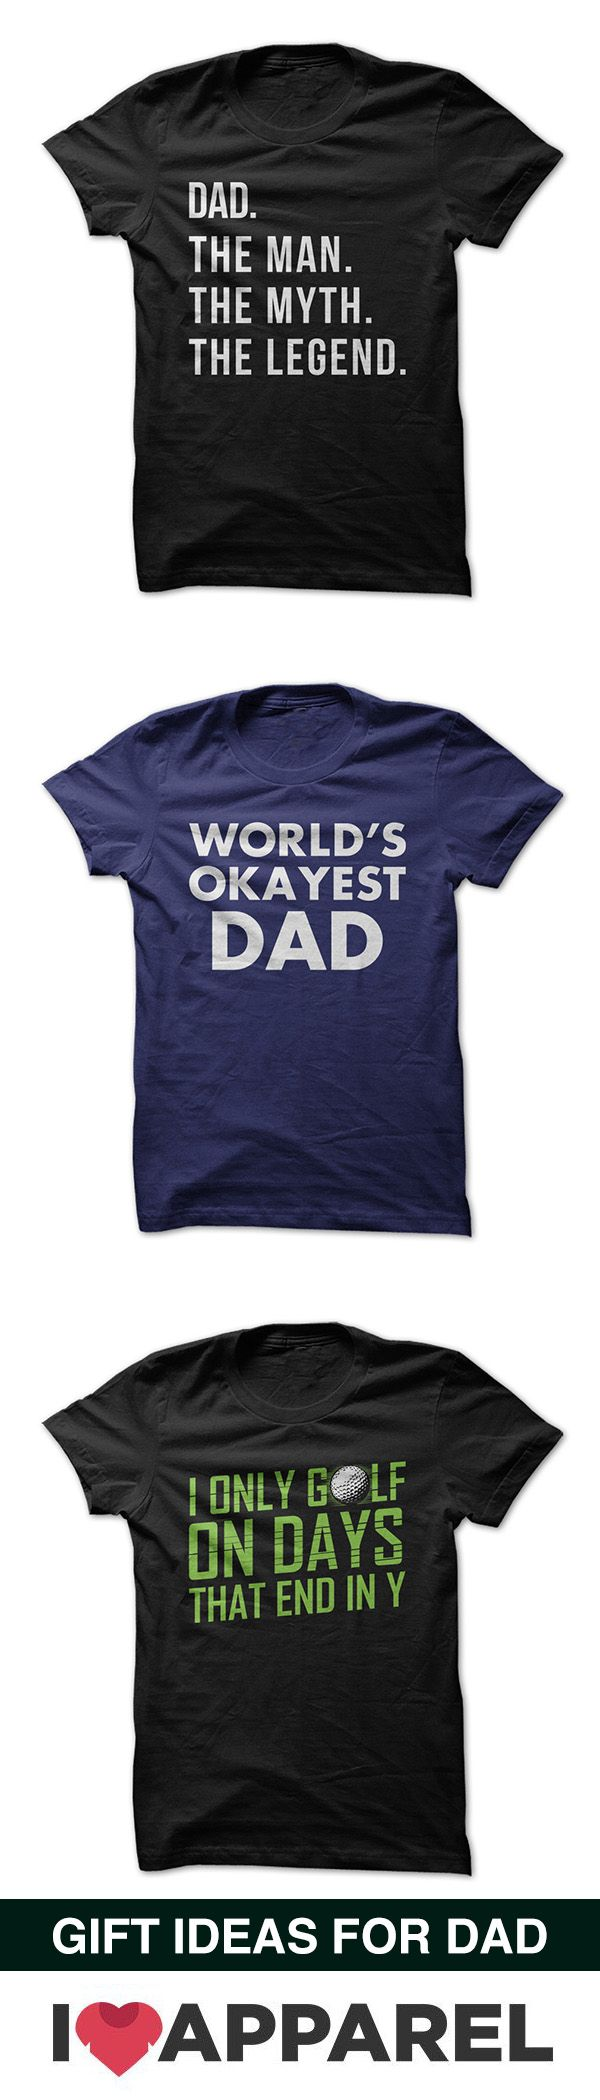 Father's Day gift ideas for dad from I Love Apparel. Buy 2 or more shirts and get free shipping. Come check out our HUGE selection today of shirts for dads and grandpa.